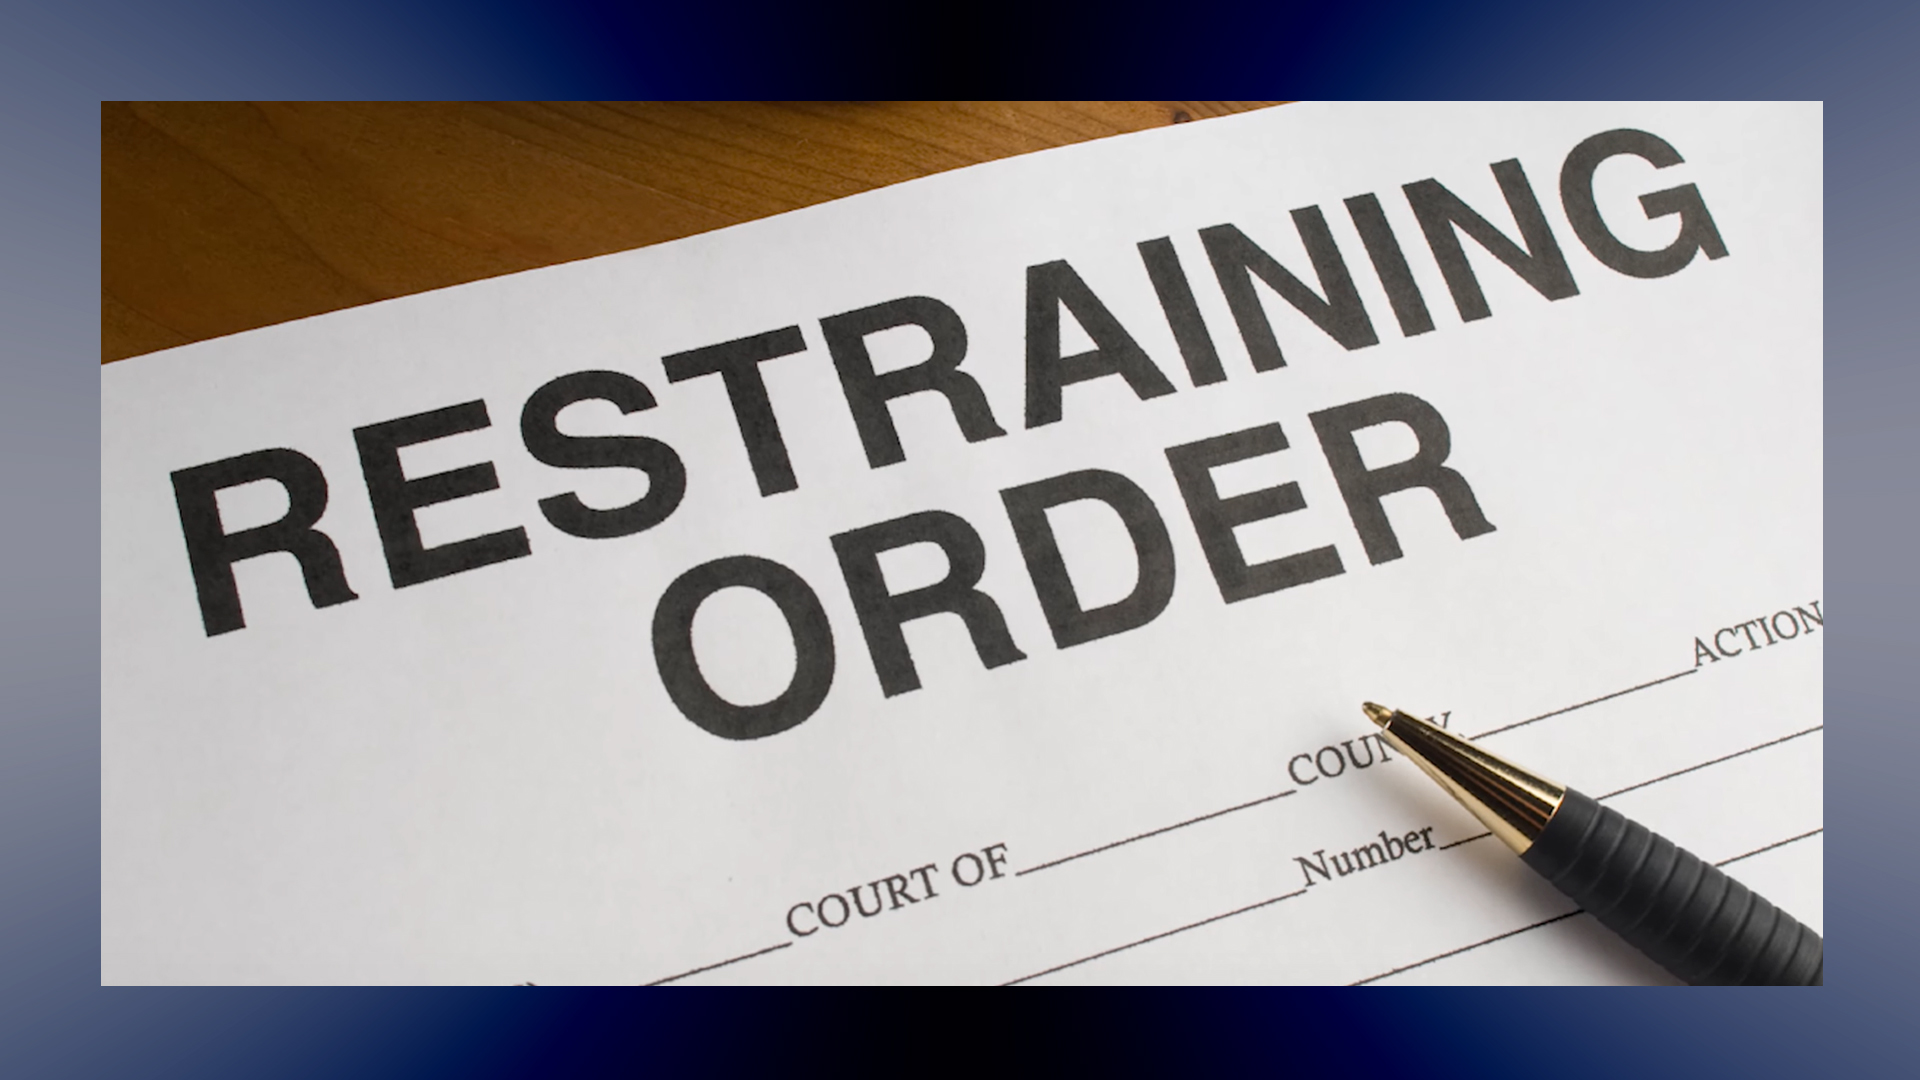 Temporary Restraining Order (TRO) How to Resolve & Get Reinstated on Amazon